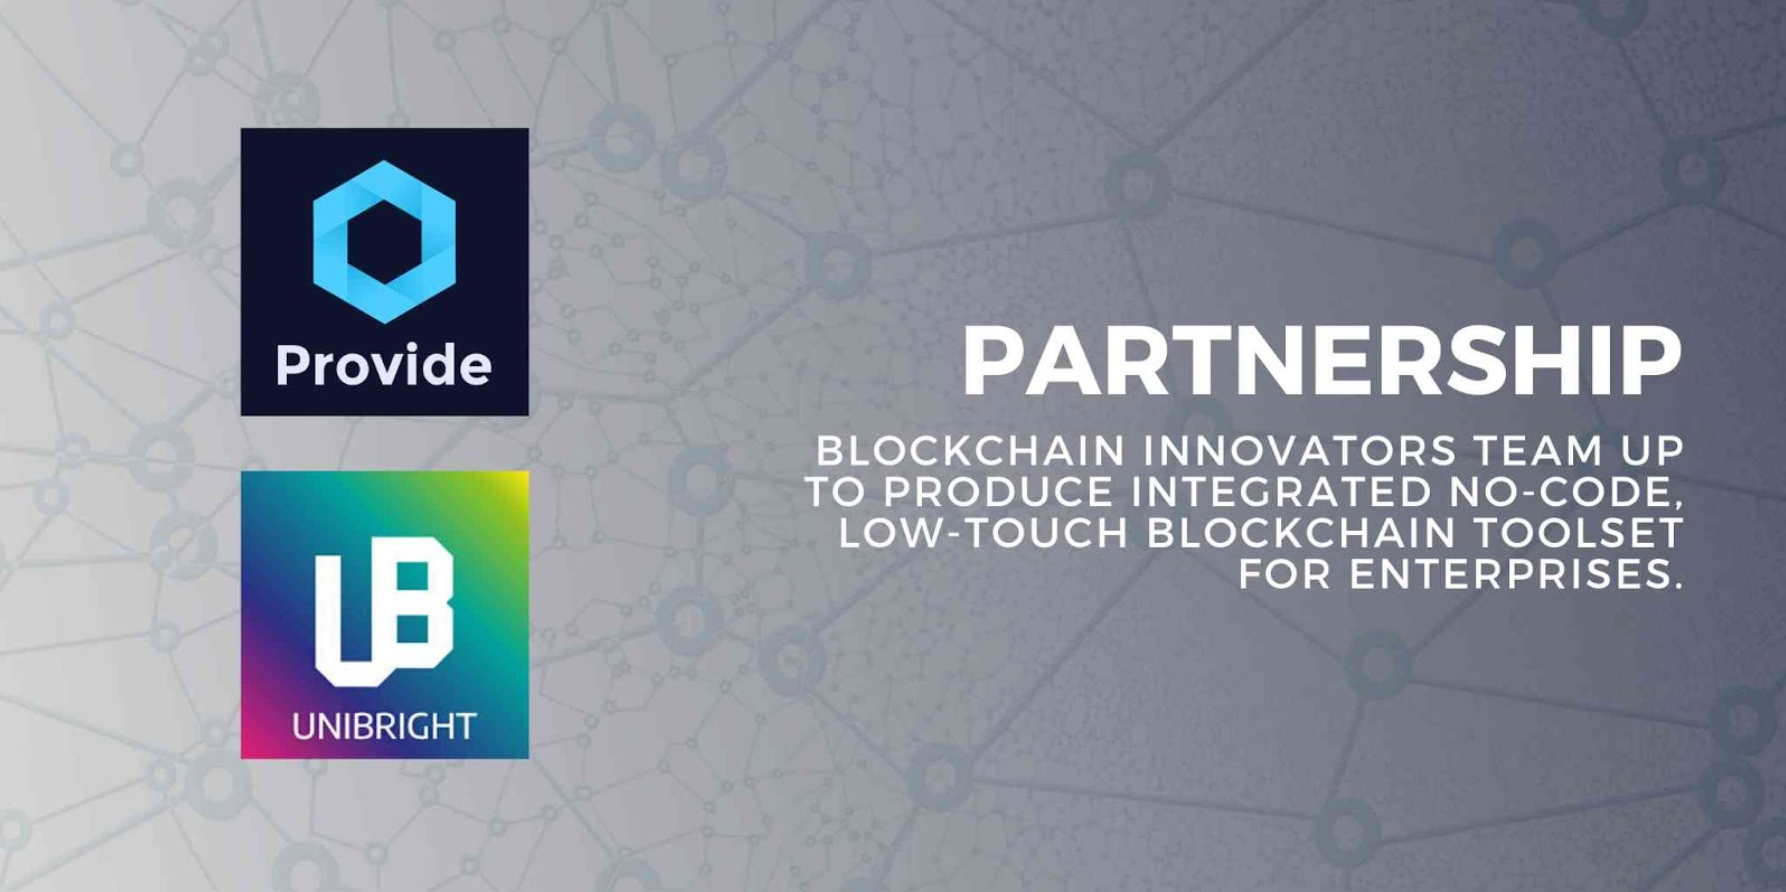 Provide Partners with Unibright to Create First Baseline Toolset for Enterprise Blockchain